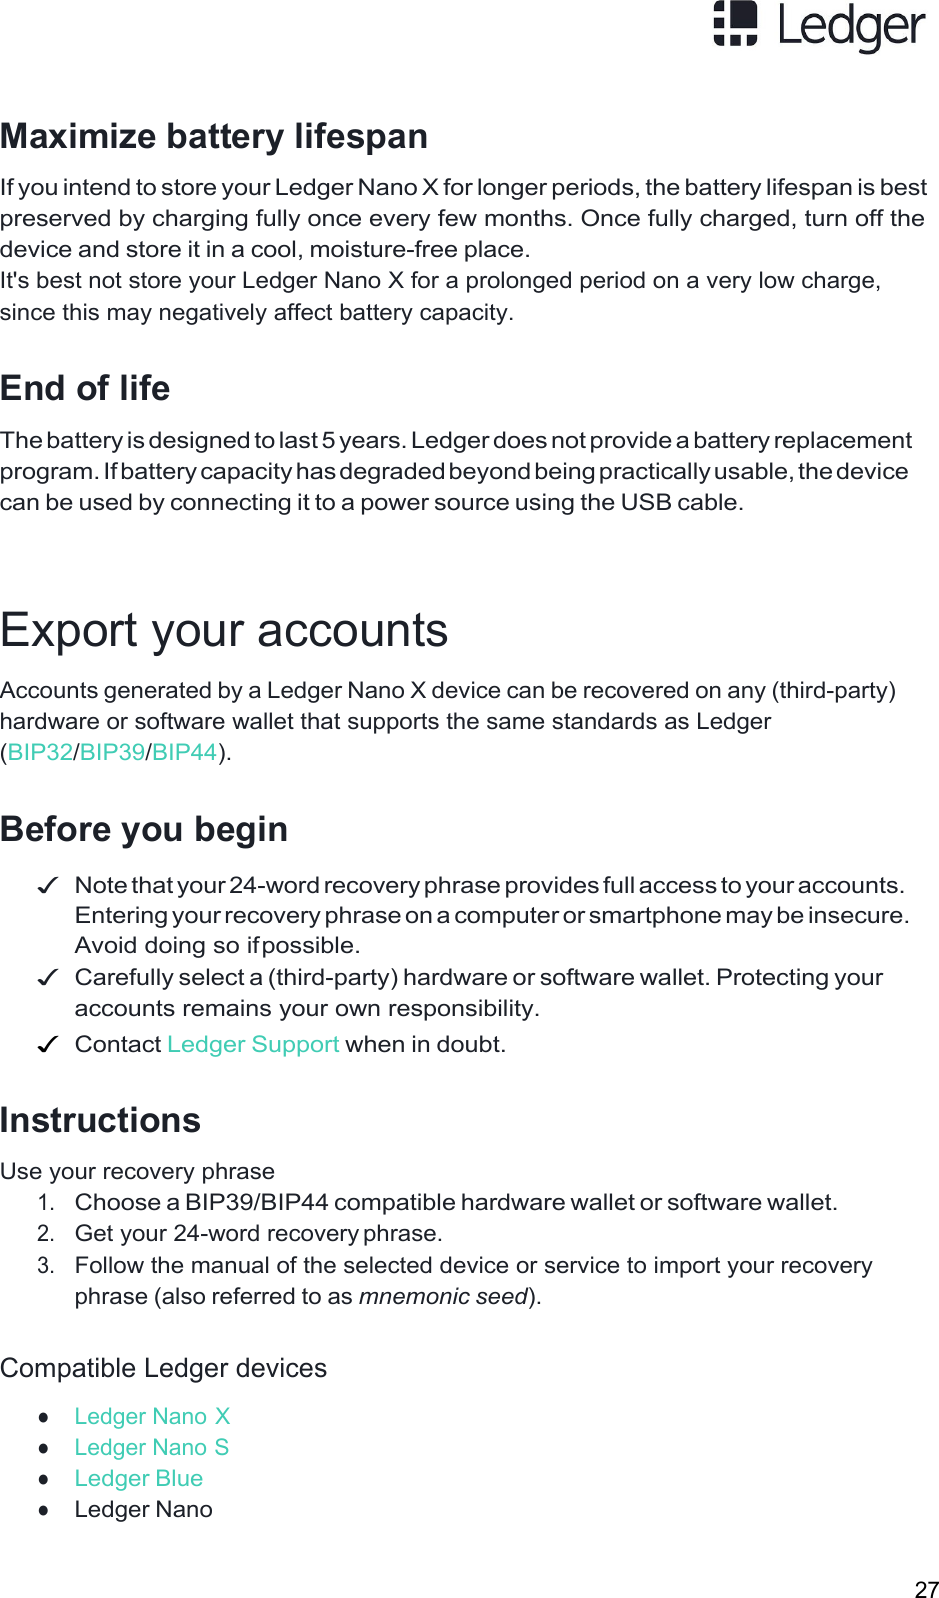 LEDGERS 0701 Bluetooth enabled Hardware Wallet User Manual